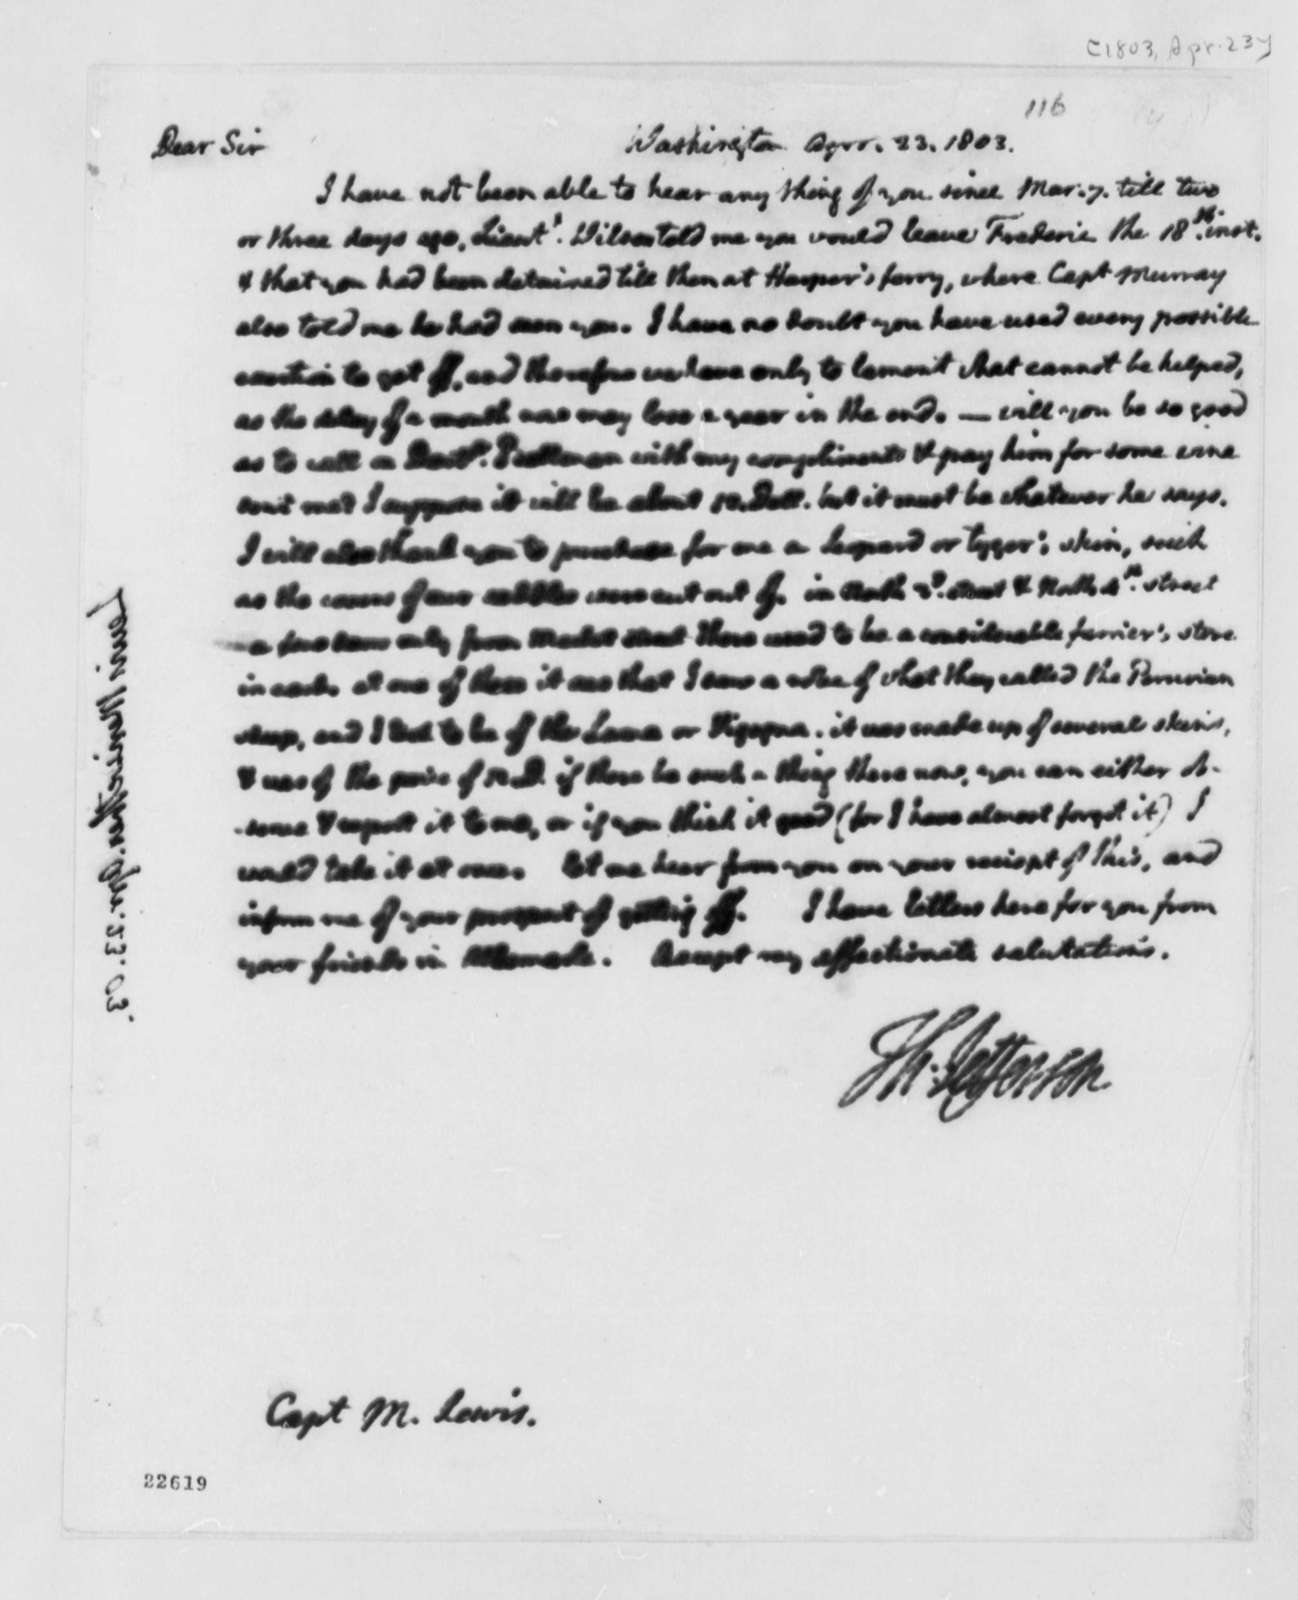 Thomas Jefferson to Meriwether Lewis, April 23, 1803